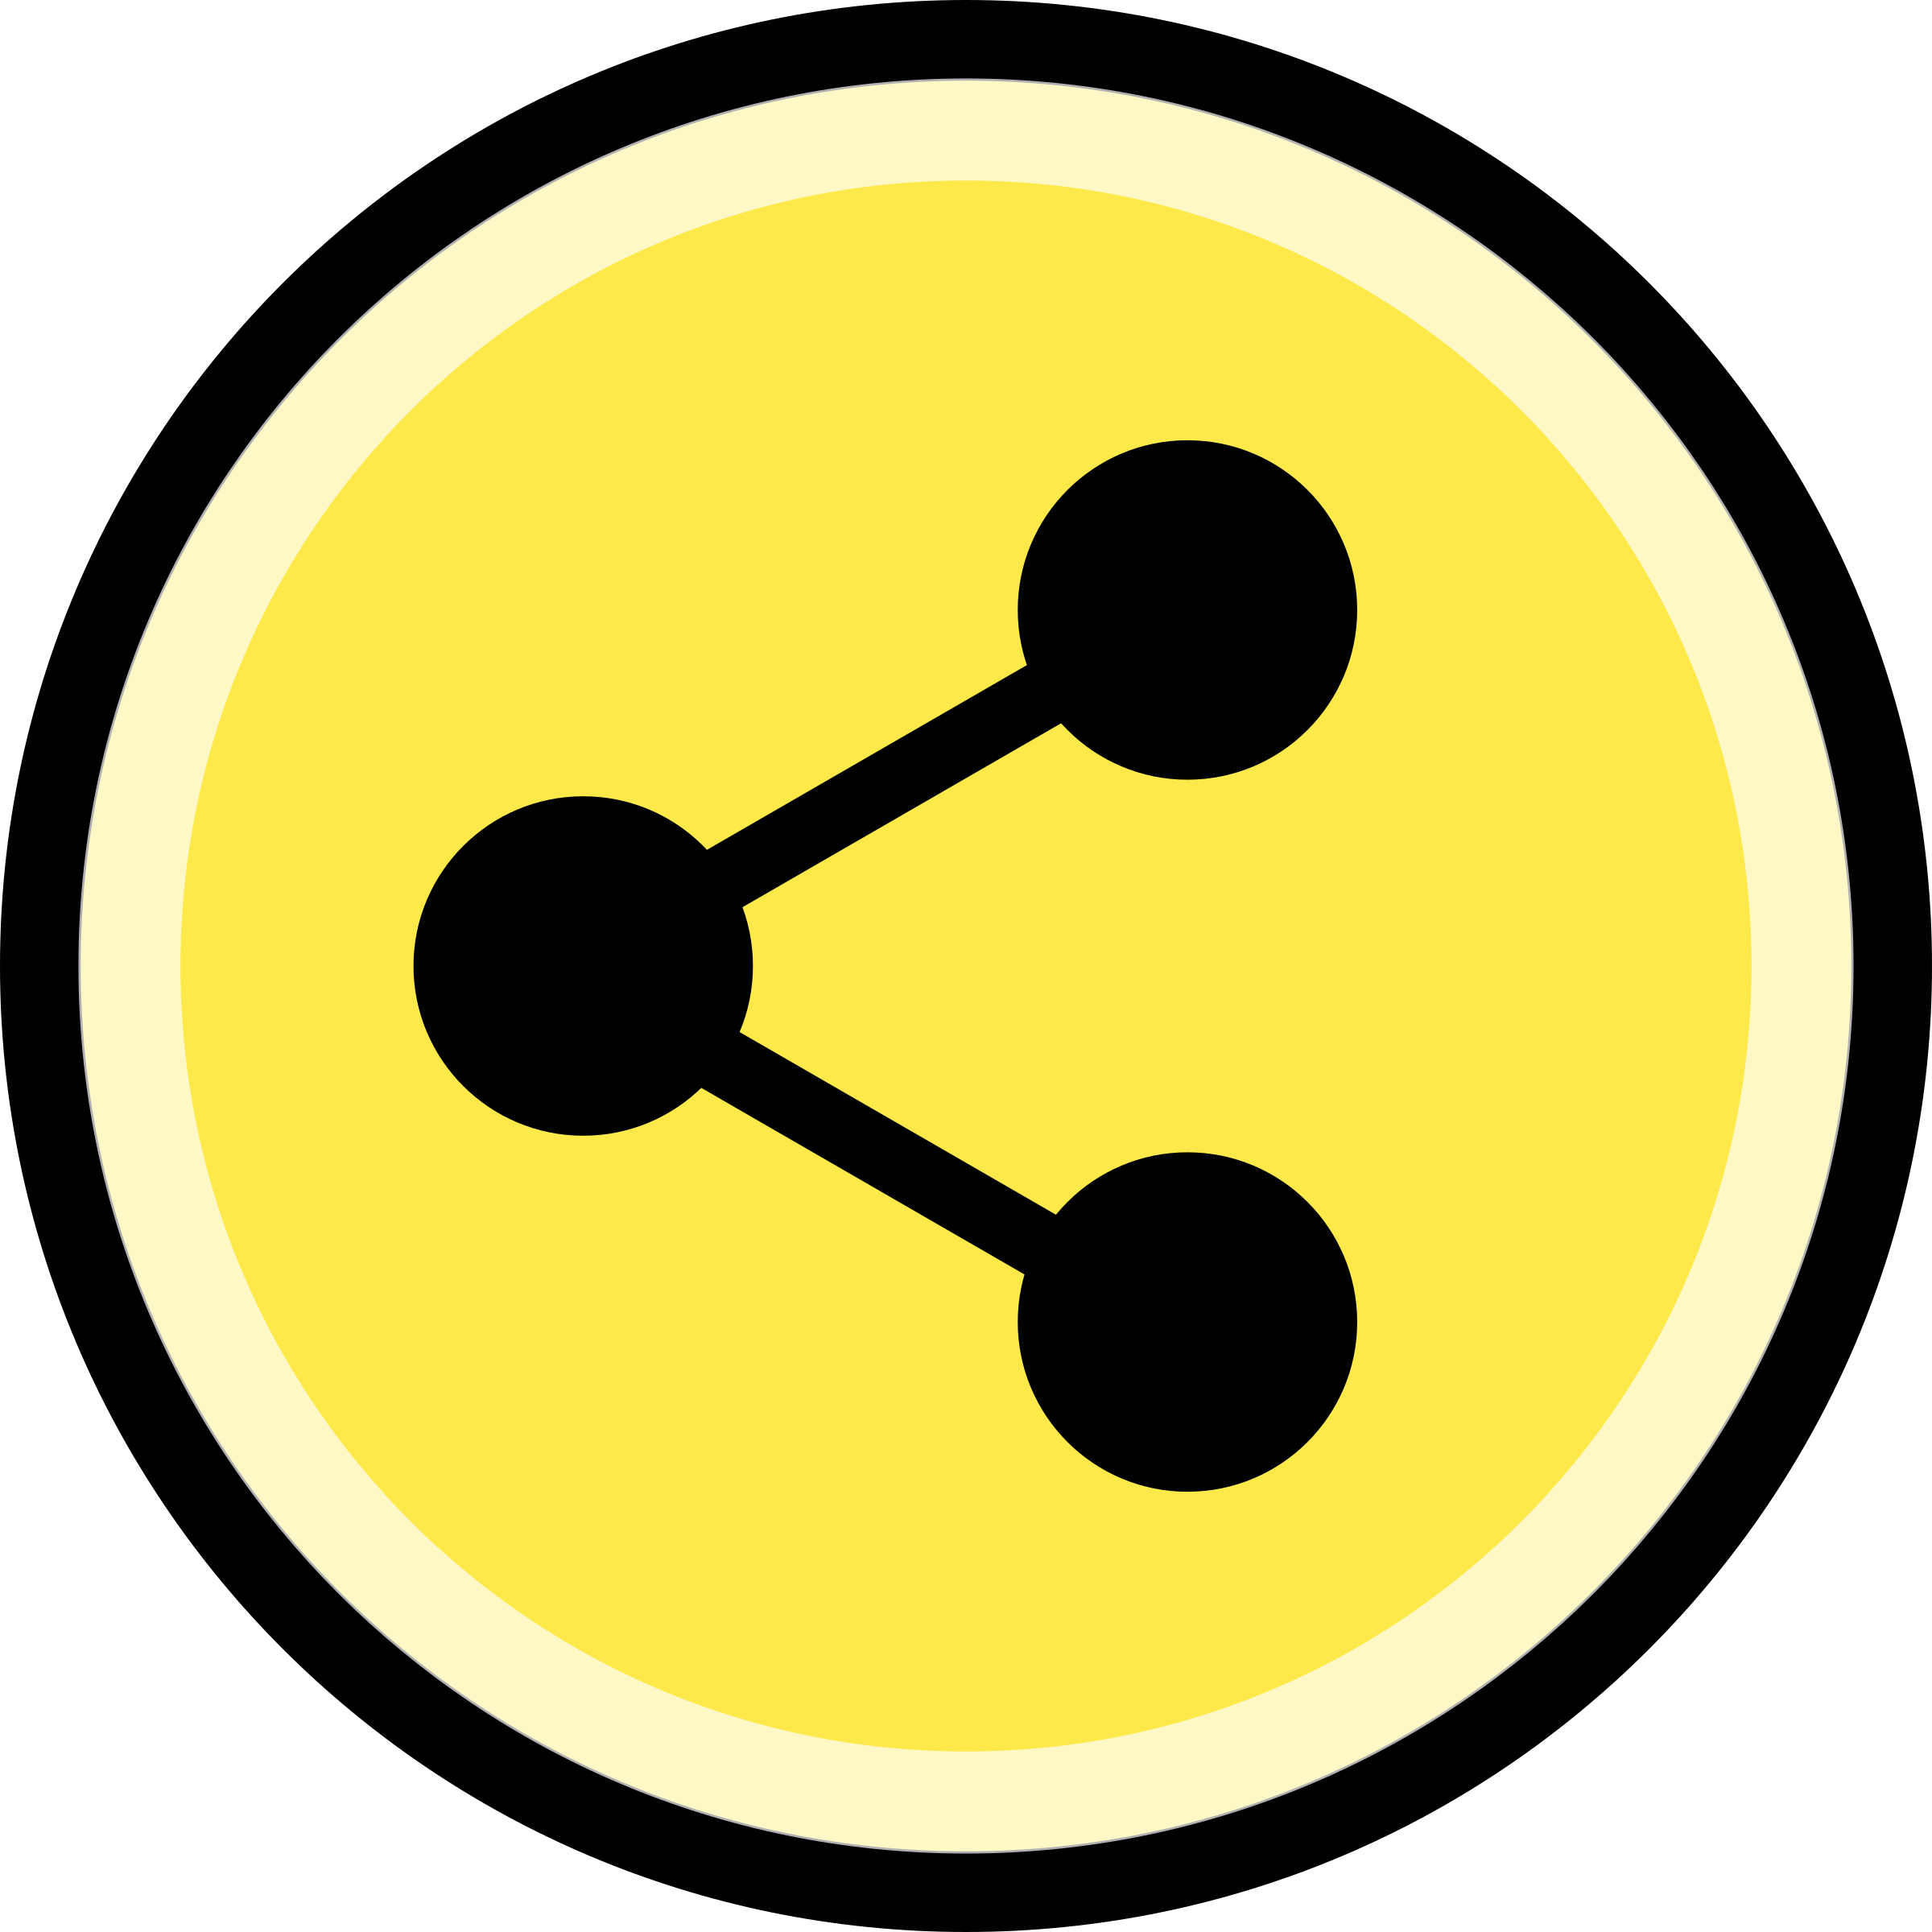 Button - Share (Yellow) by Technaturally